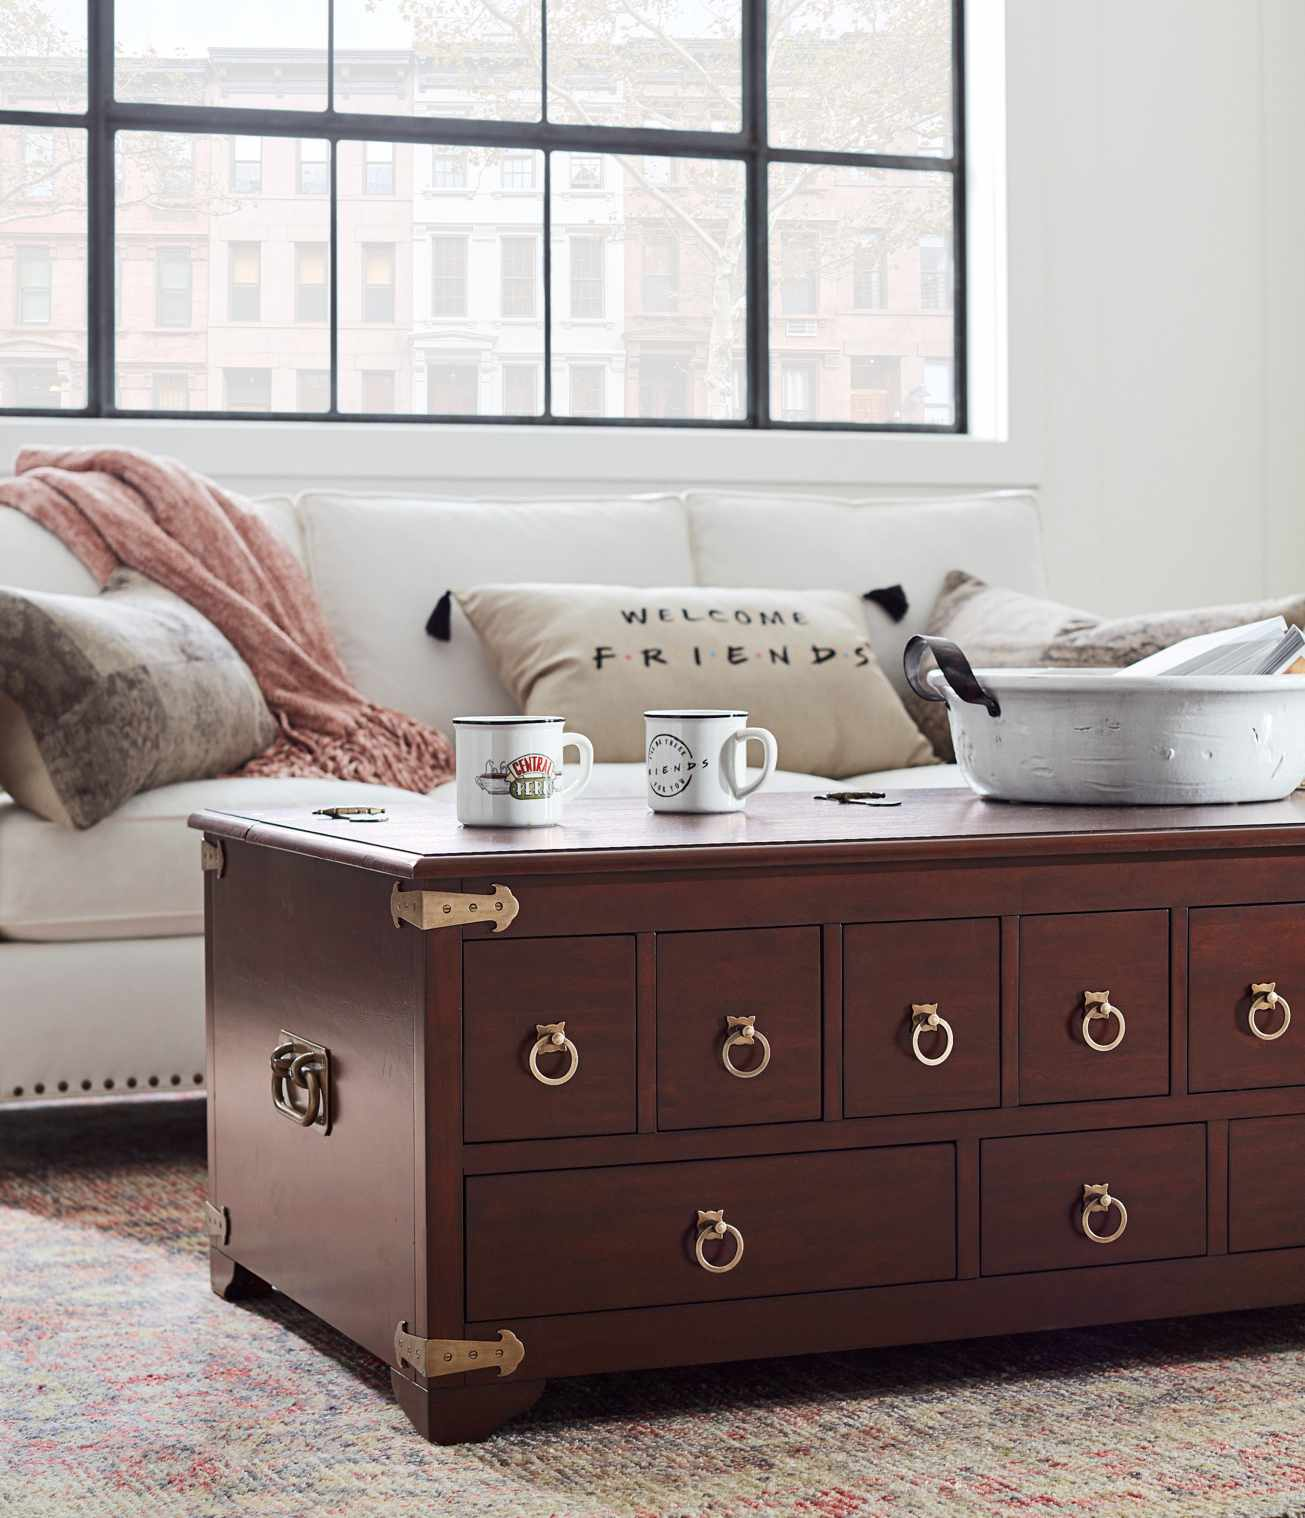 """Pottery Barn Just Announced a New Collection Inspired by the Show """"Friends"""""""